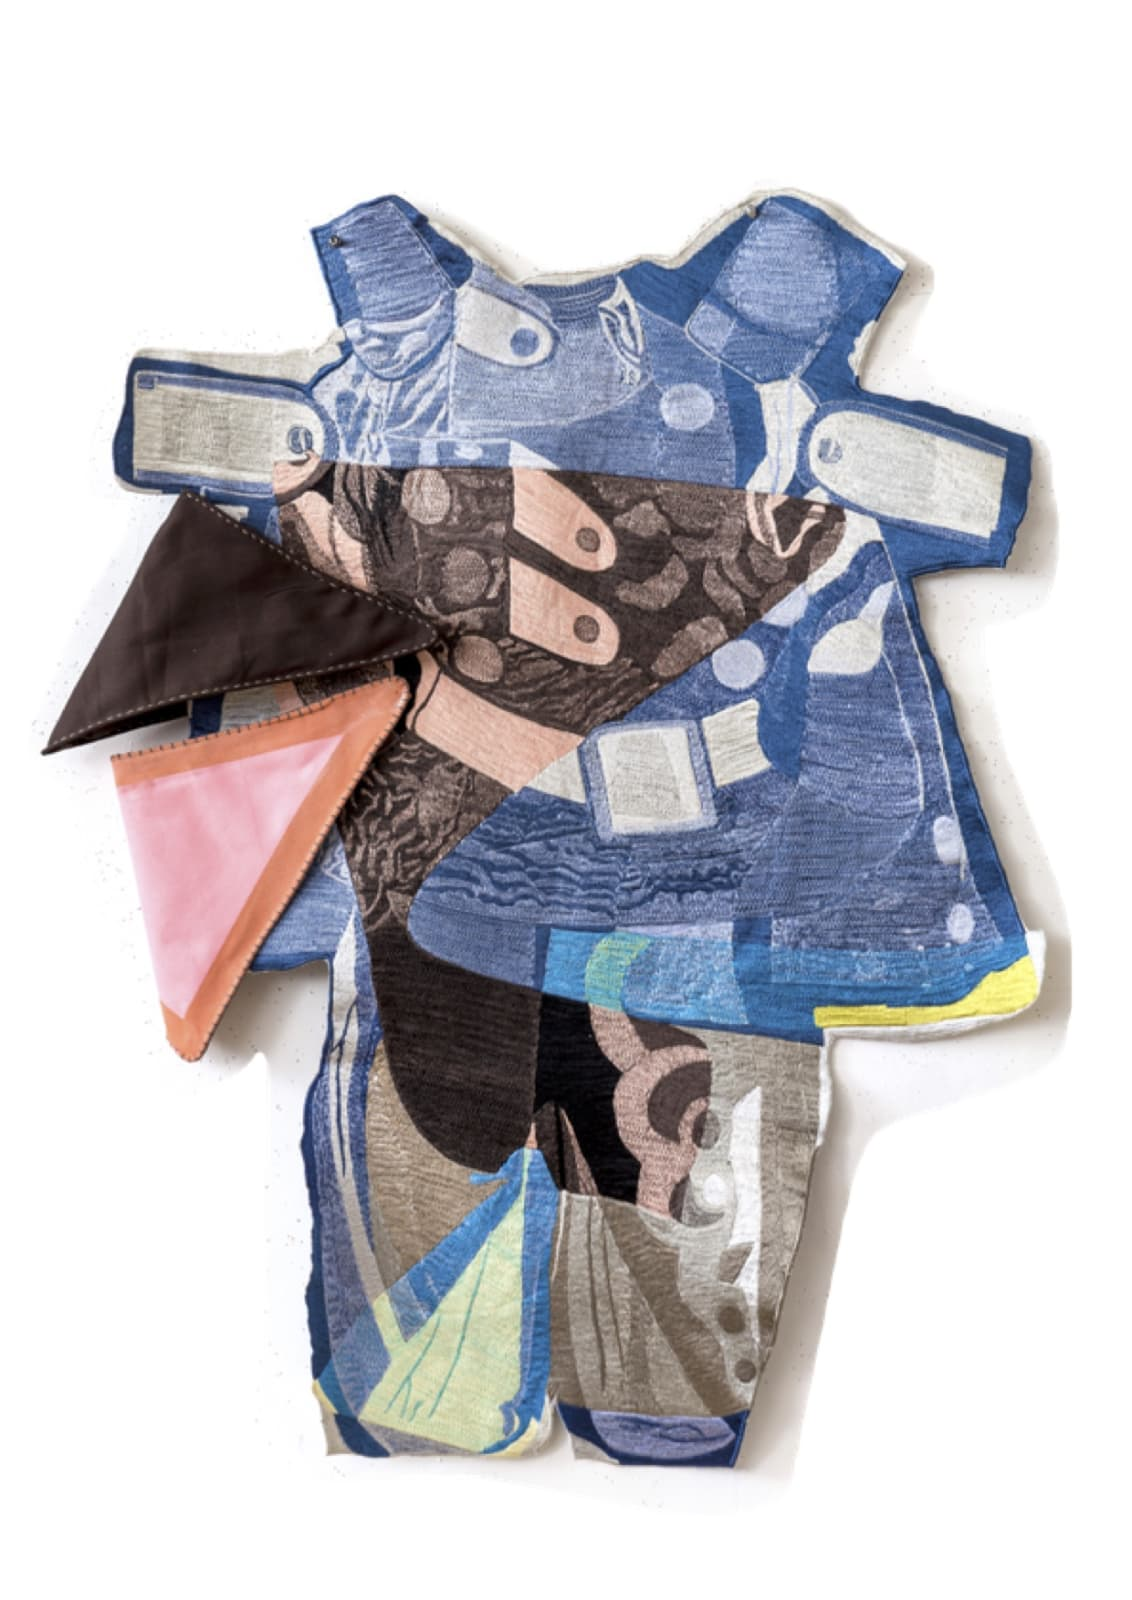 Sally Smart, Performance Assemblage (Form), 2016